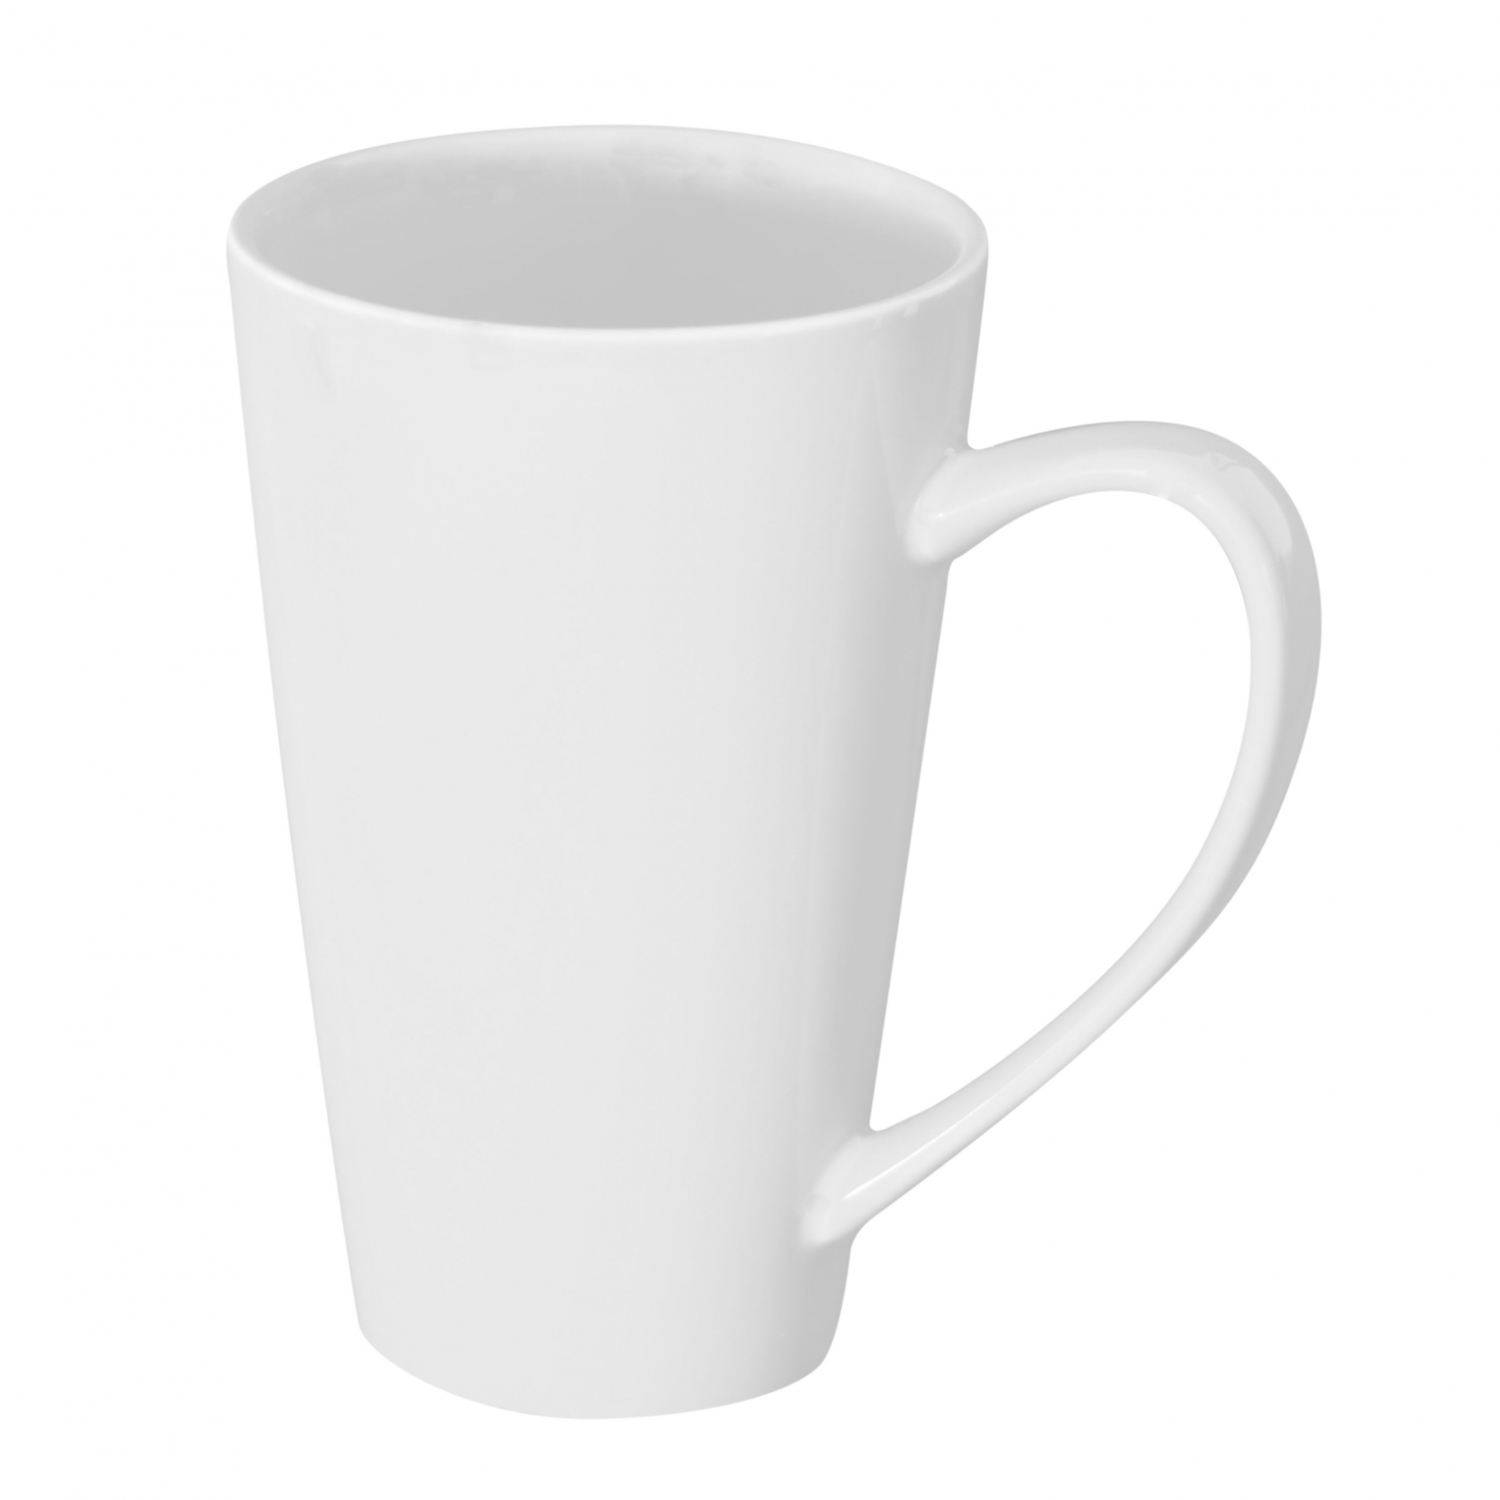 10 Strawberry Street XLMUG-WHT 24 oz. White Oversized Latte Mug - 12 pcs